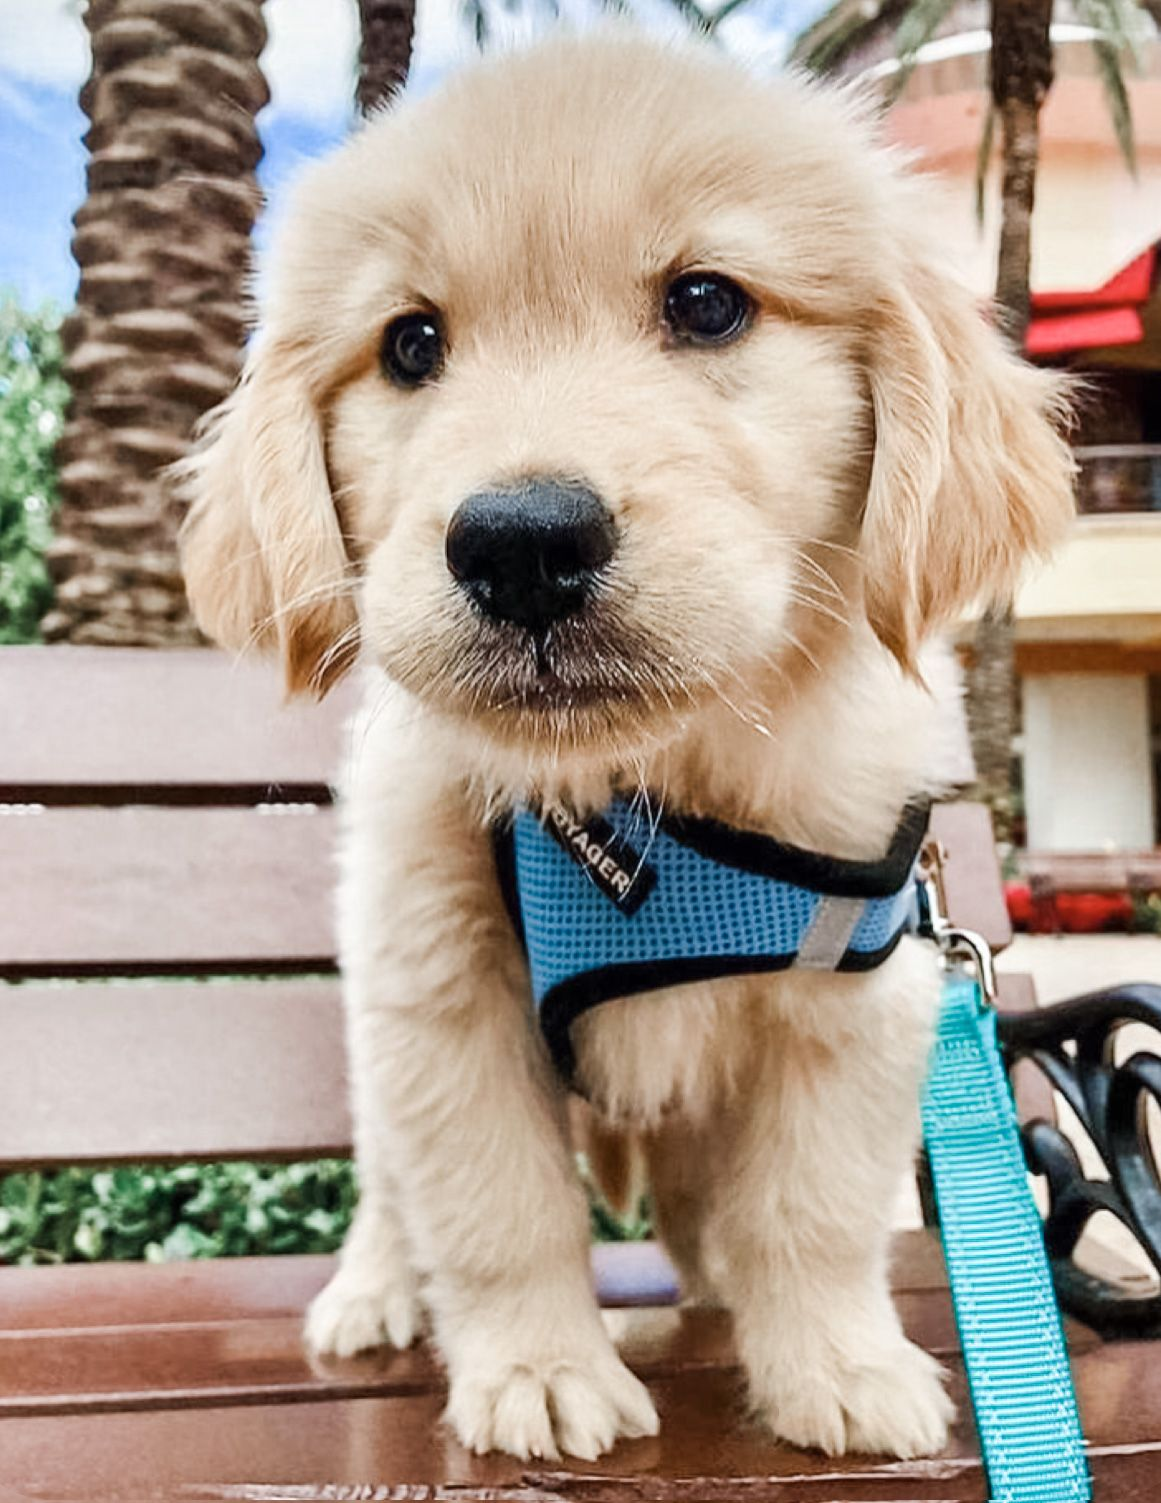 26 Teeny Tiny Puppies Guaranteed To Make You Say Awww Cute Animals Cute Animal Pictures Cute Dogs